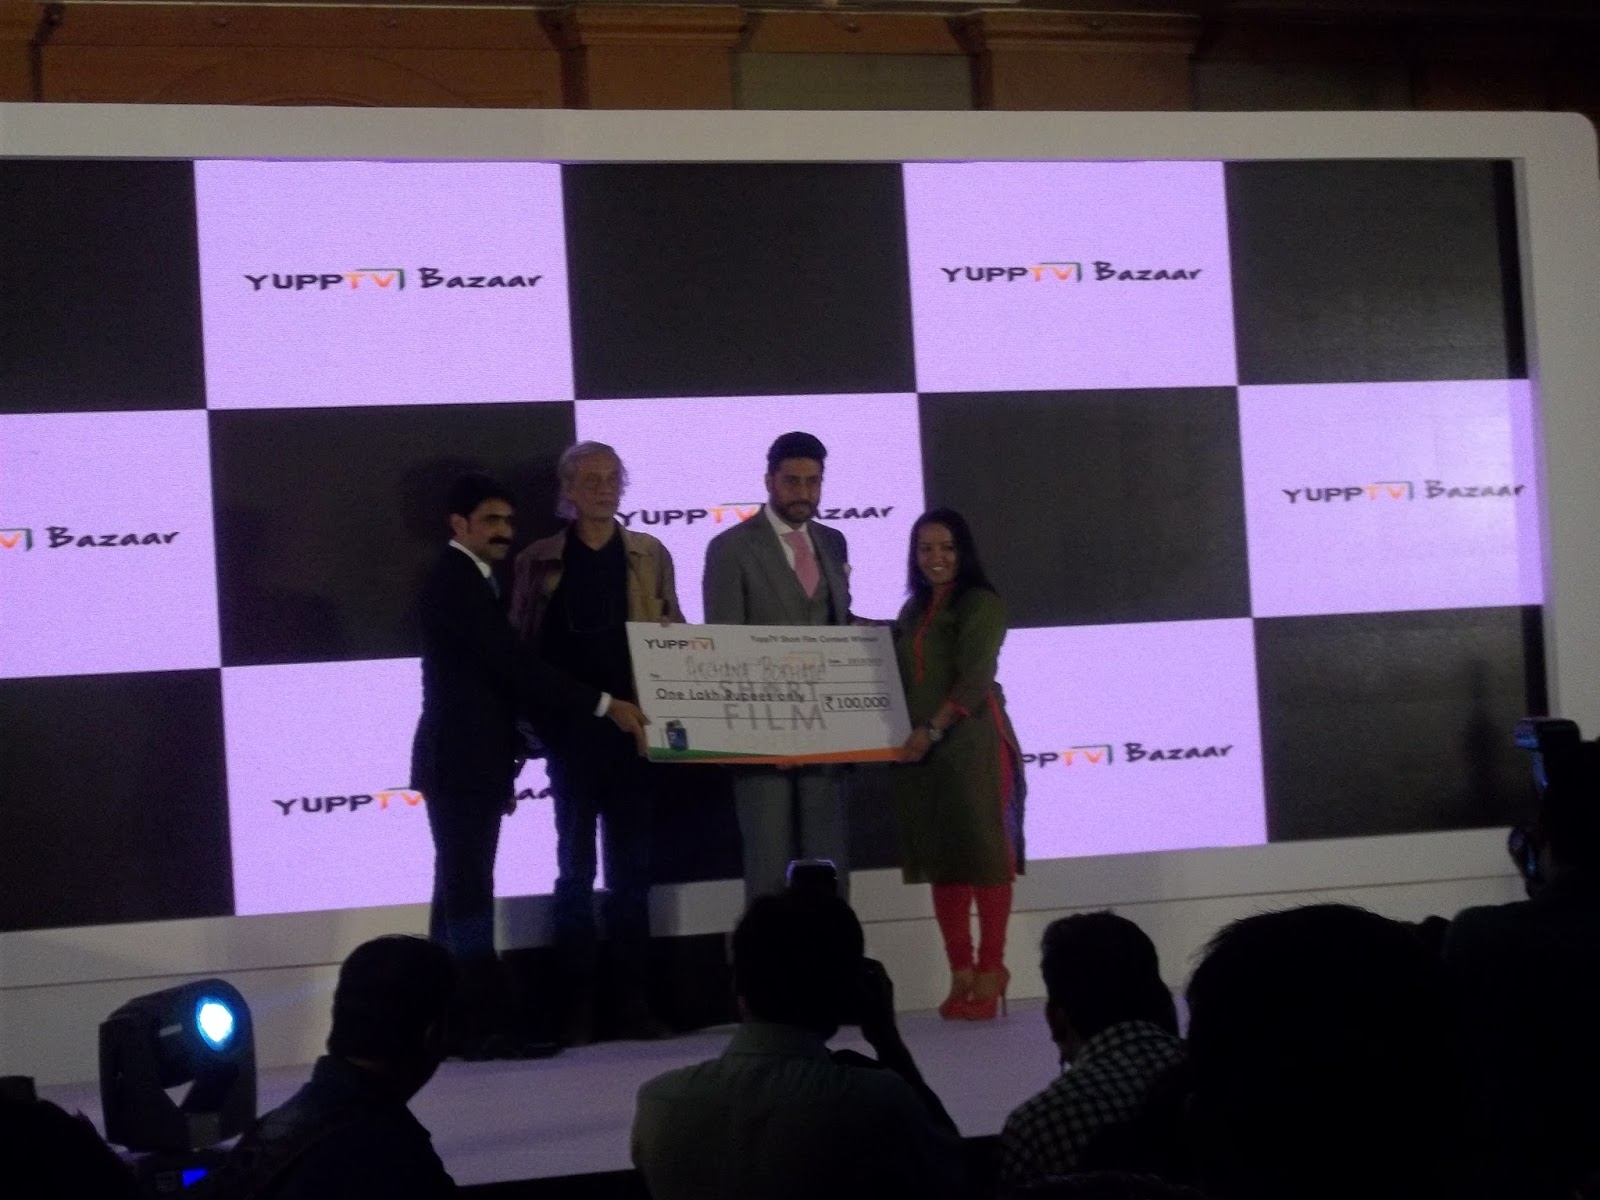 SPIRIT OF MUMBAI: Abhishek Bachchan launches Yupp TV Bazaar